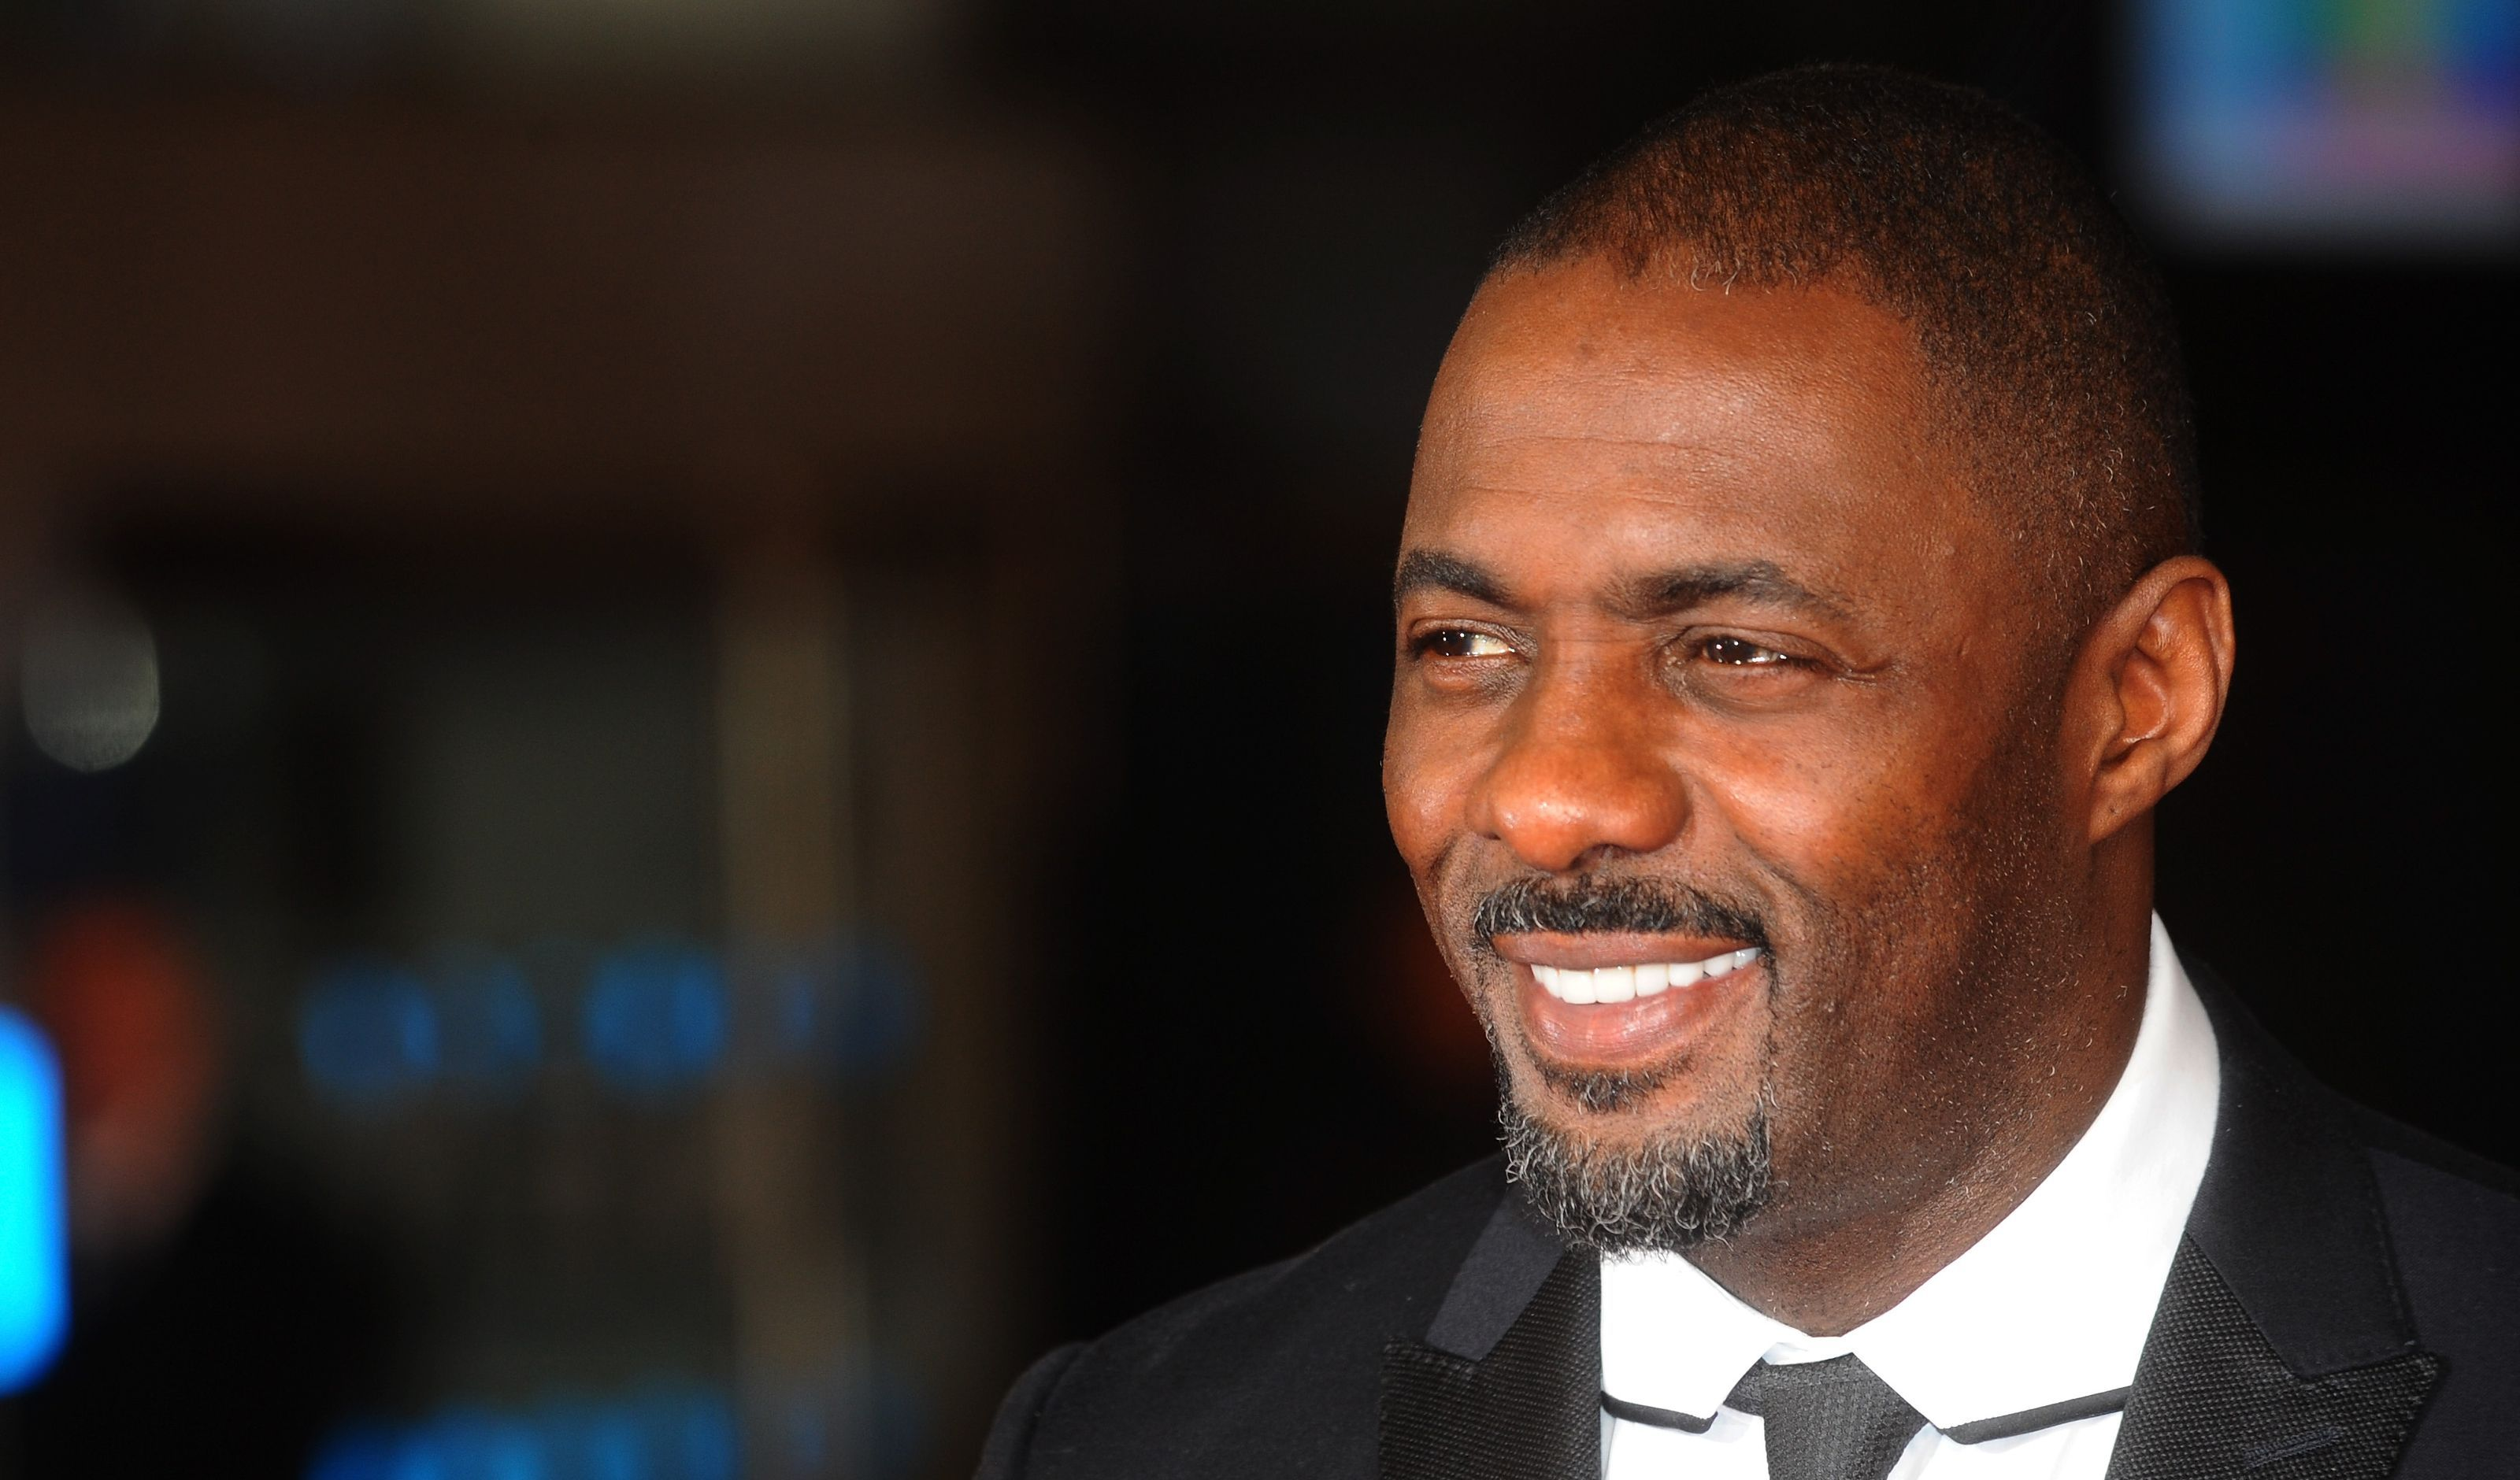 idris elba smile background wallpaper 67014